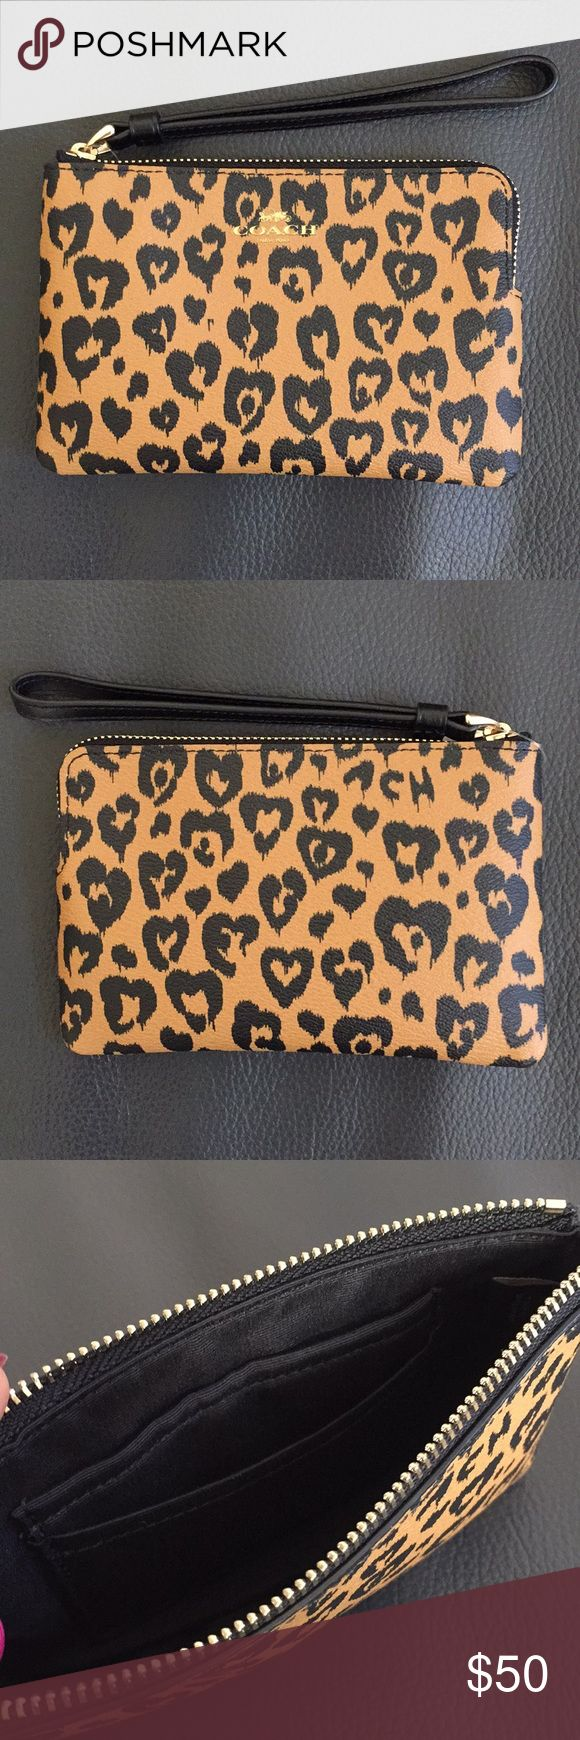 NEW Coach Wristlet - Heart Leopard Animal Print BRAND NEW Coach Wristlet - Heart Leopard Animal Print in black and brown with gold Coach logo on front. 2 card slots on inside. Coach Bags Clutches & Wristlets